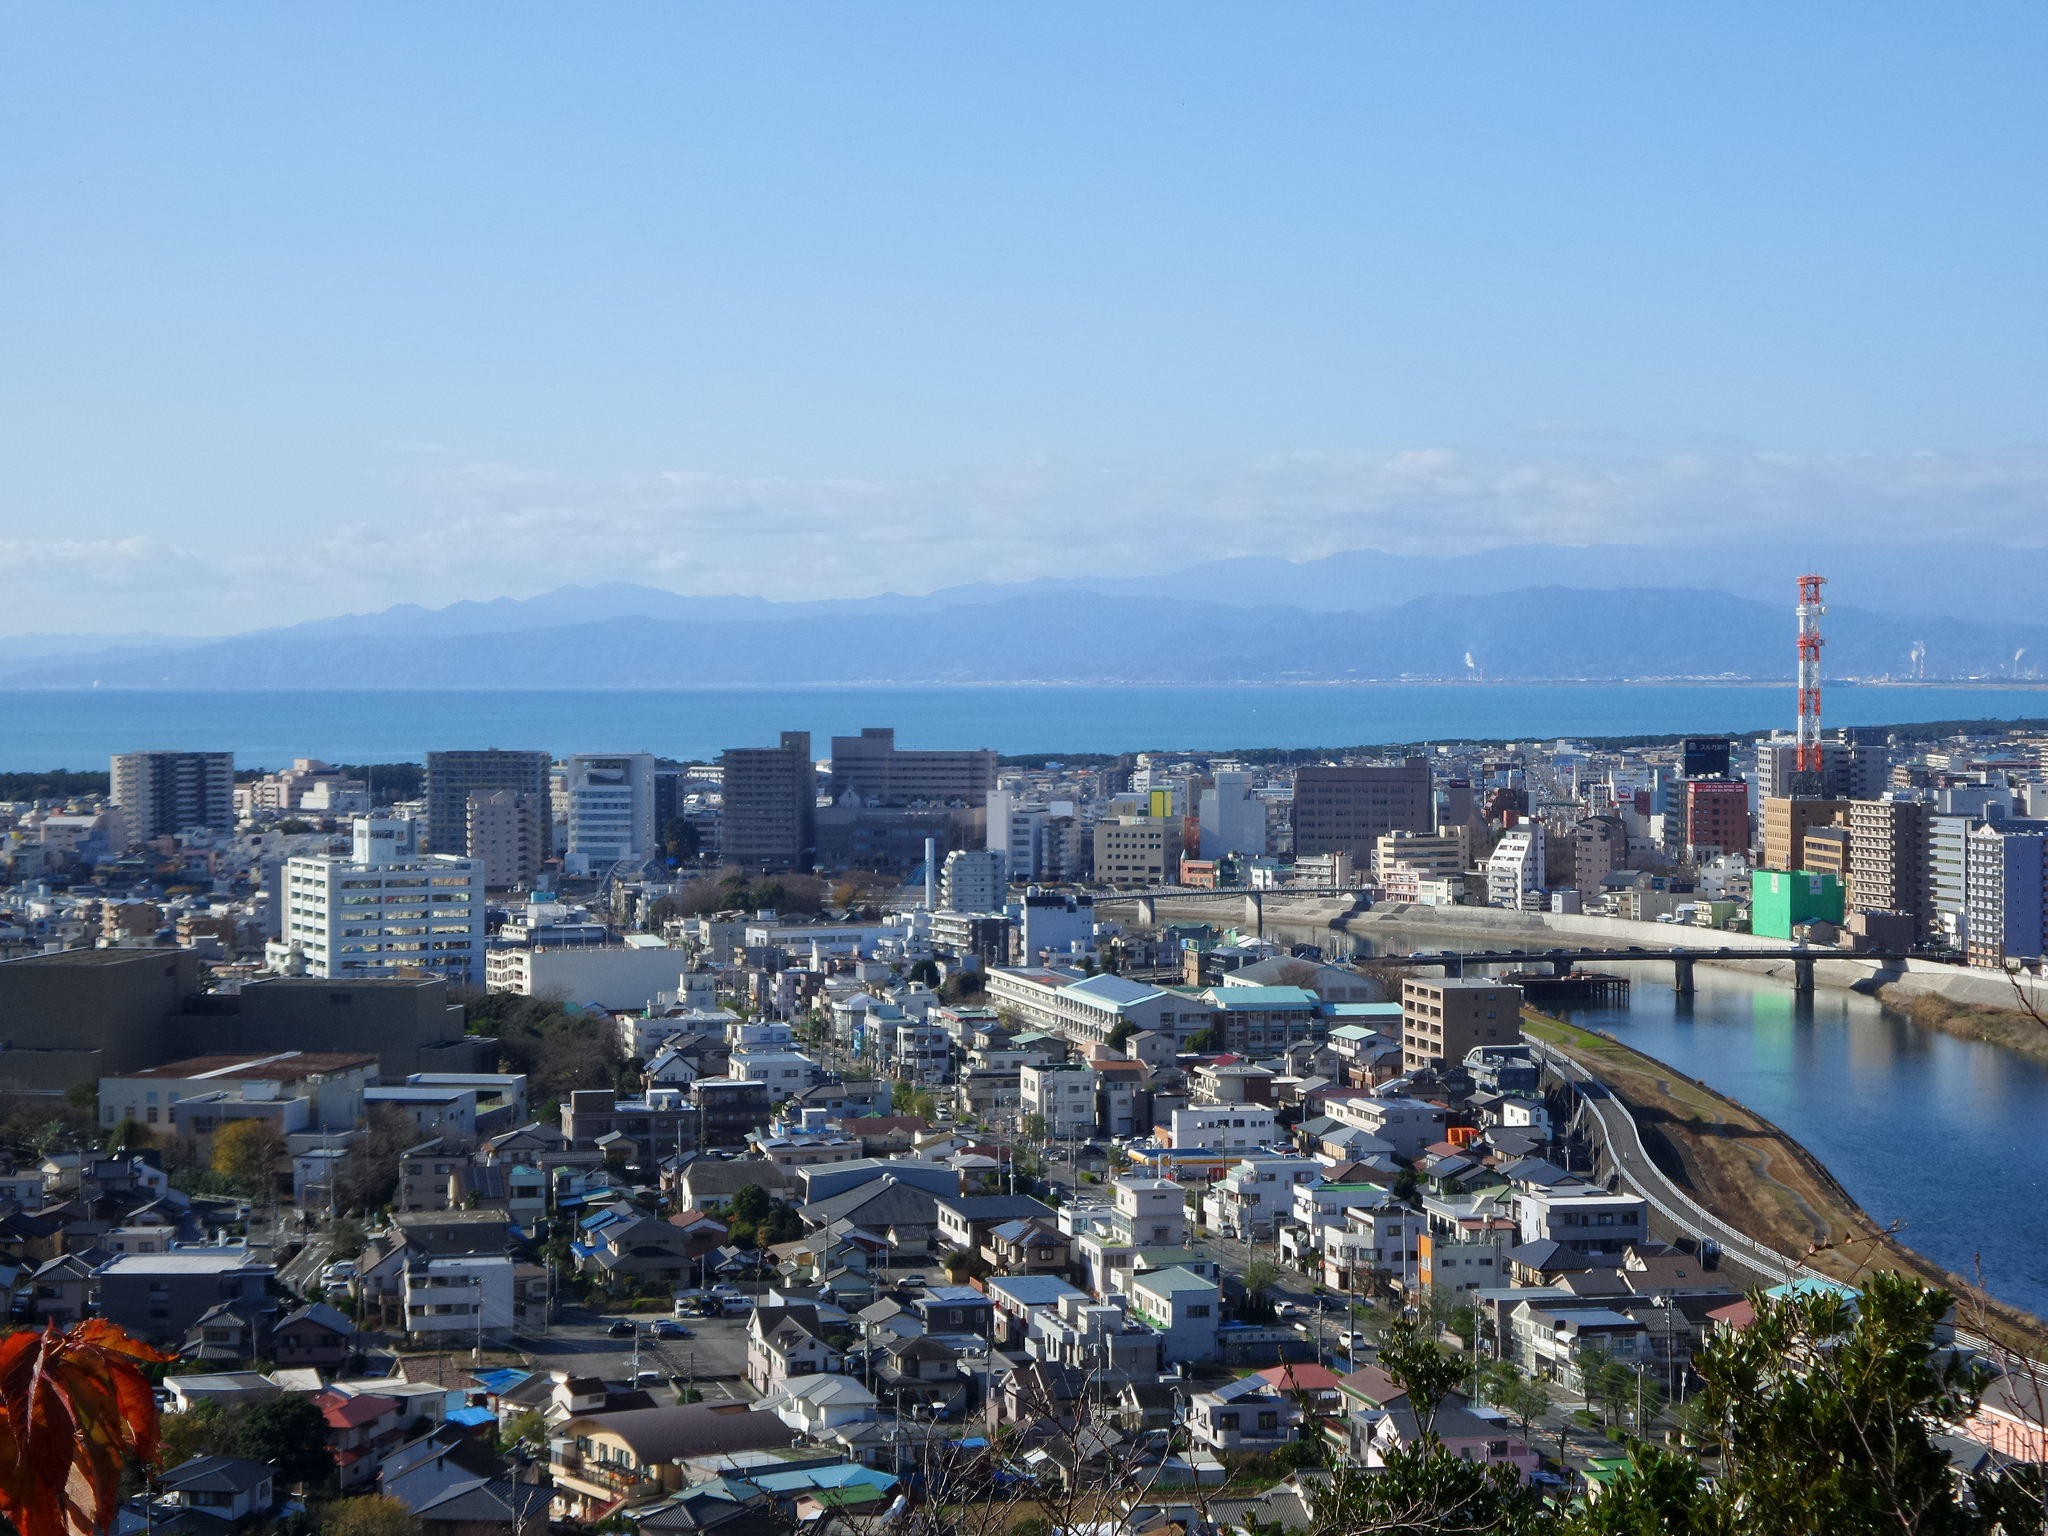 Free download high resolution image - free image free photo free stock image public domain picture -Numazu view, Japan